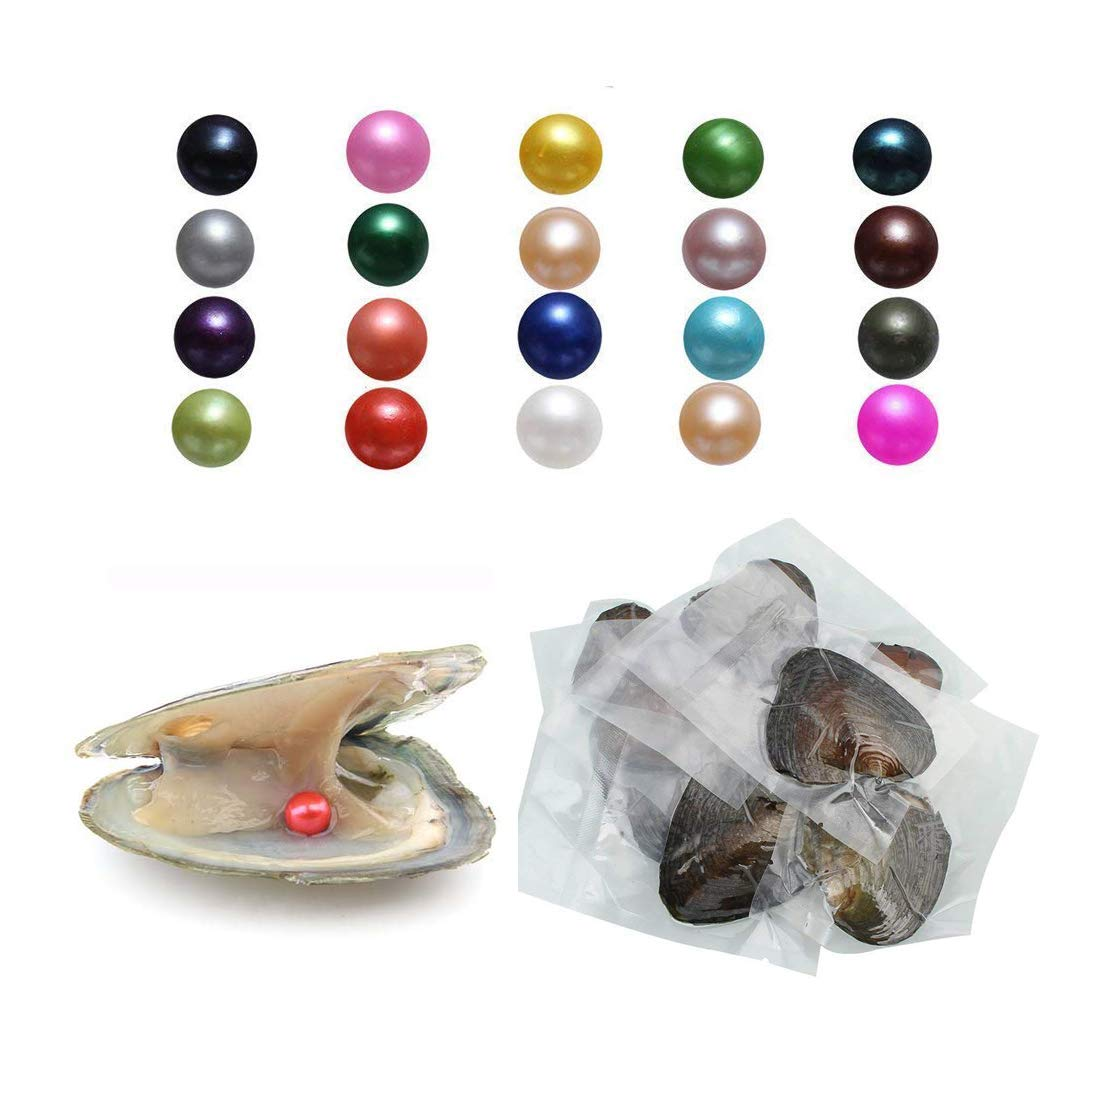 POSHOPS 50PCS Wholesale Oysters with Pearls Inside Freshwater Cultured Pearl Oysters Bulk for Christmas Pearl Party Different Colors